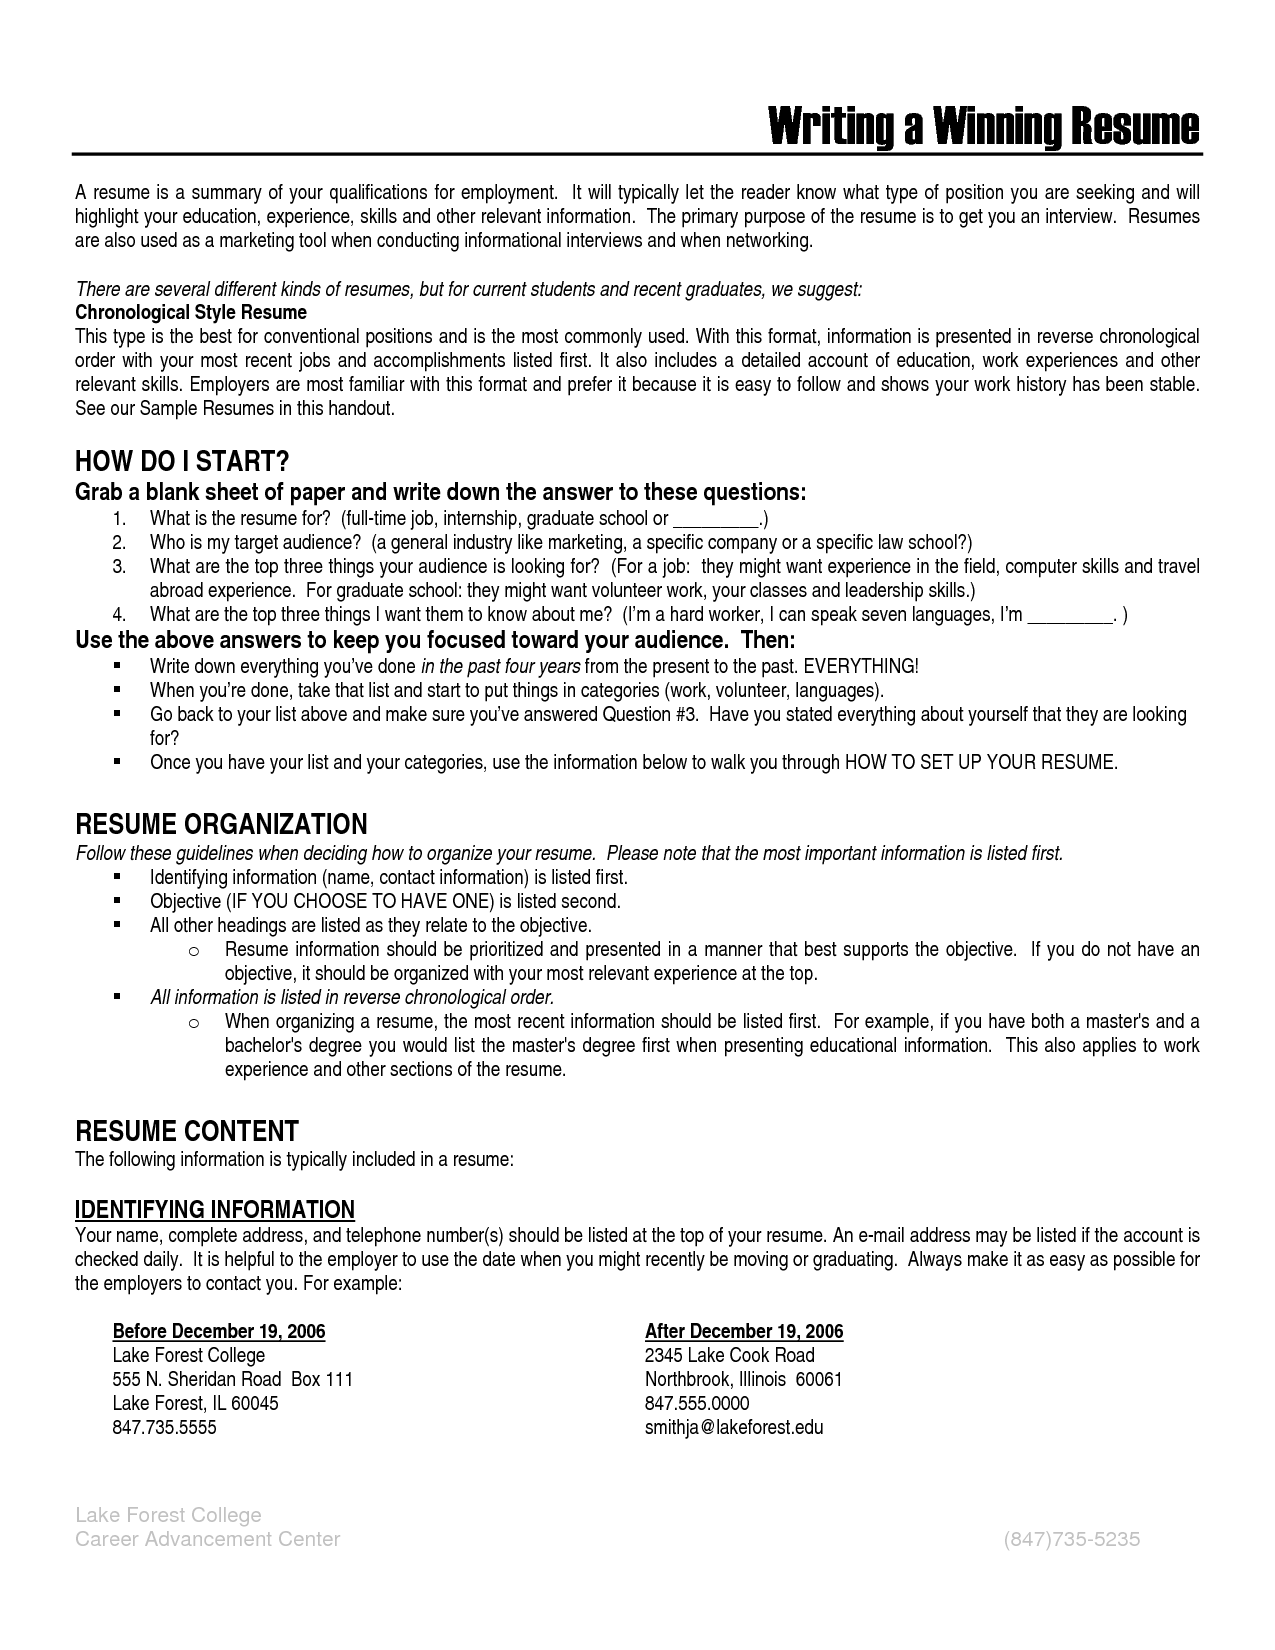 cv career history ordervolunteer work on resume application letter